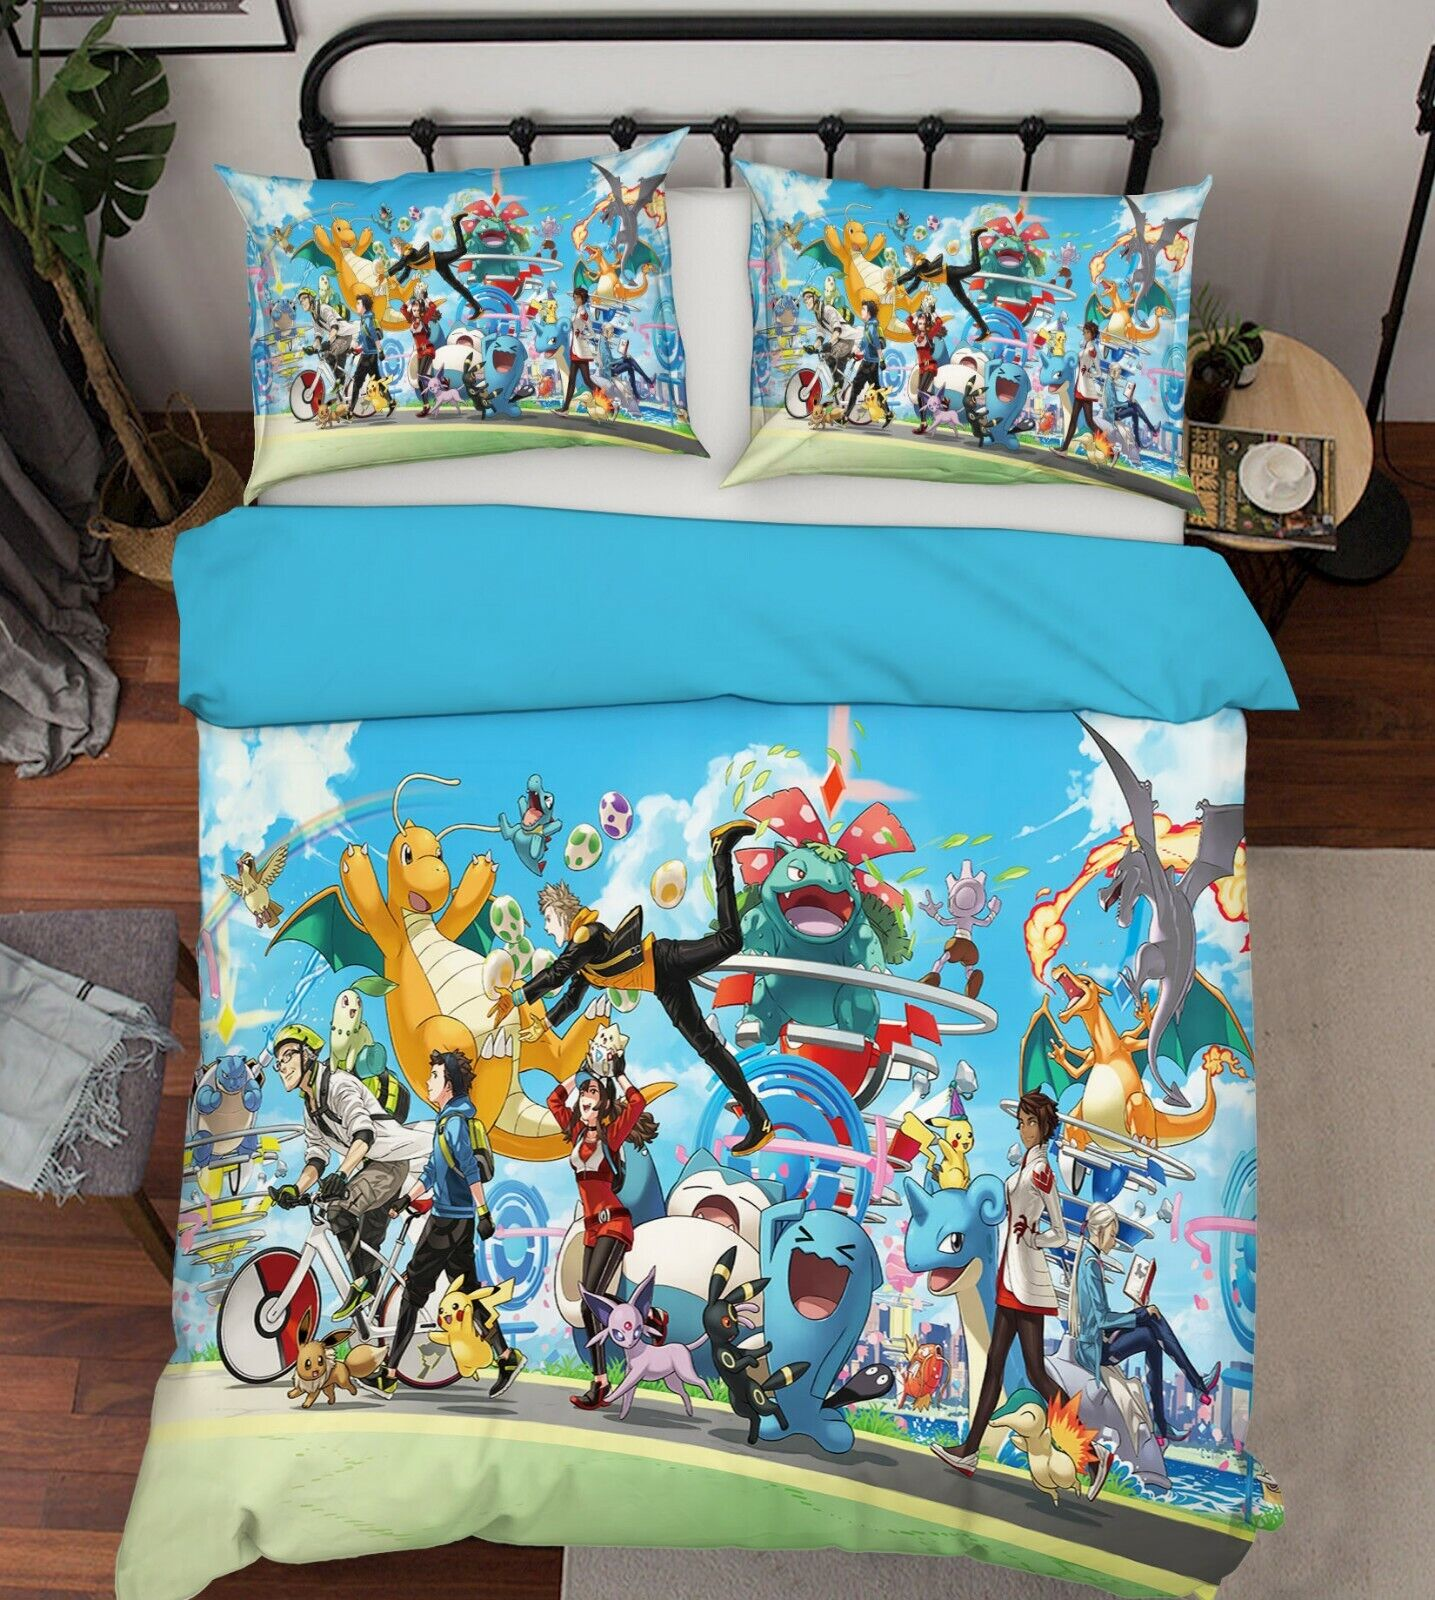 3D Pokemon 536 Japan Anime Bed Pillowcases Quilt Duvet Cover Single AU